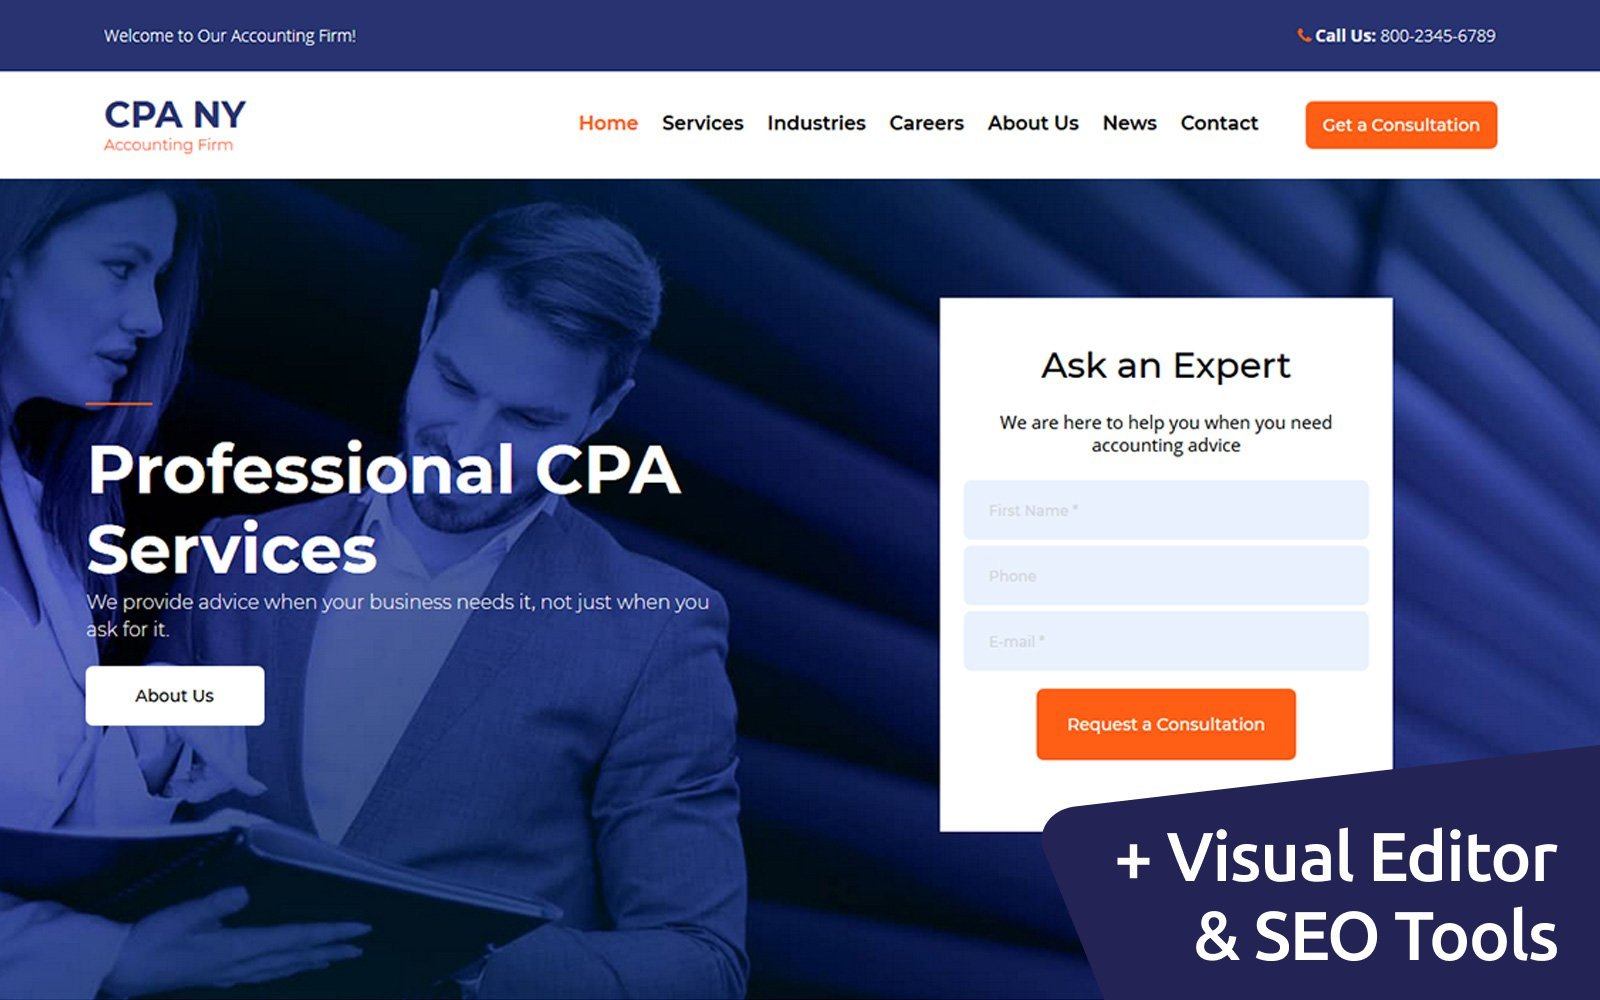 CPA NY - Accounting Firm №111047